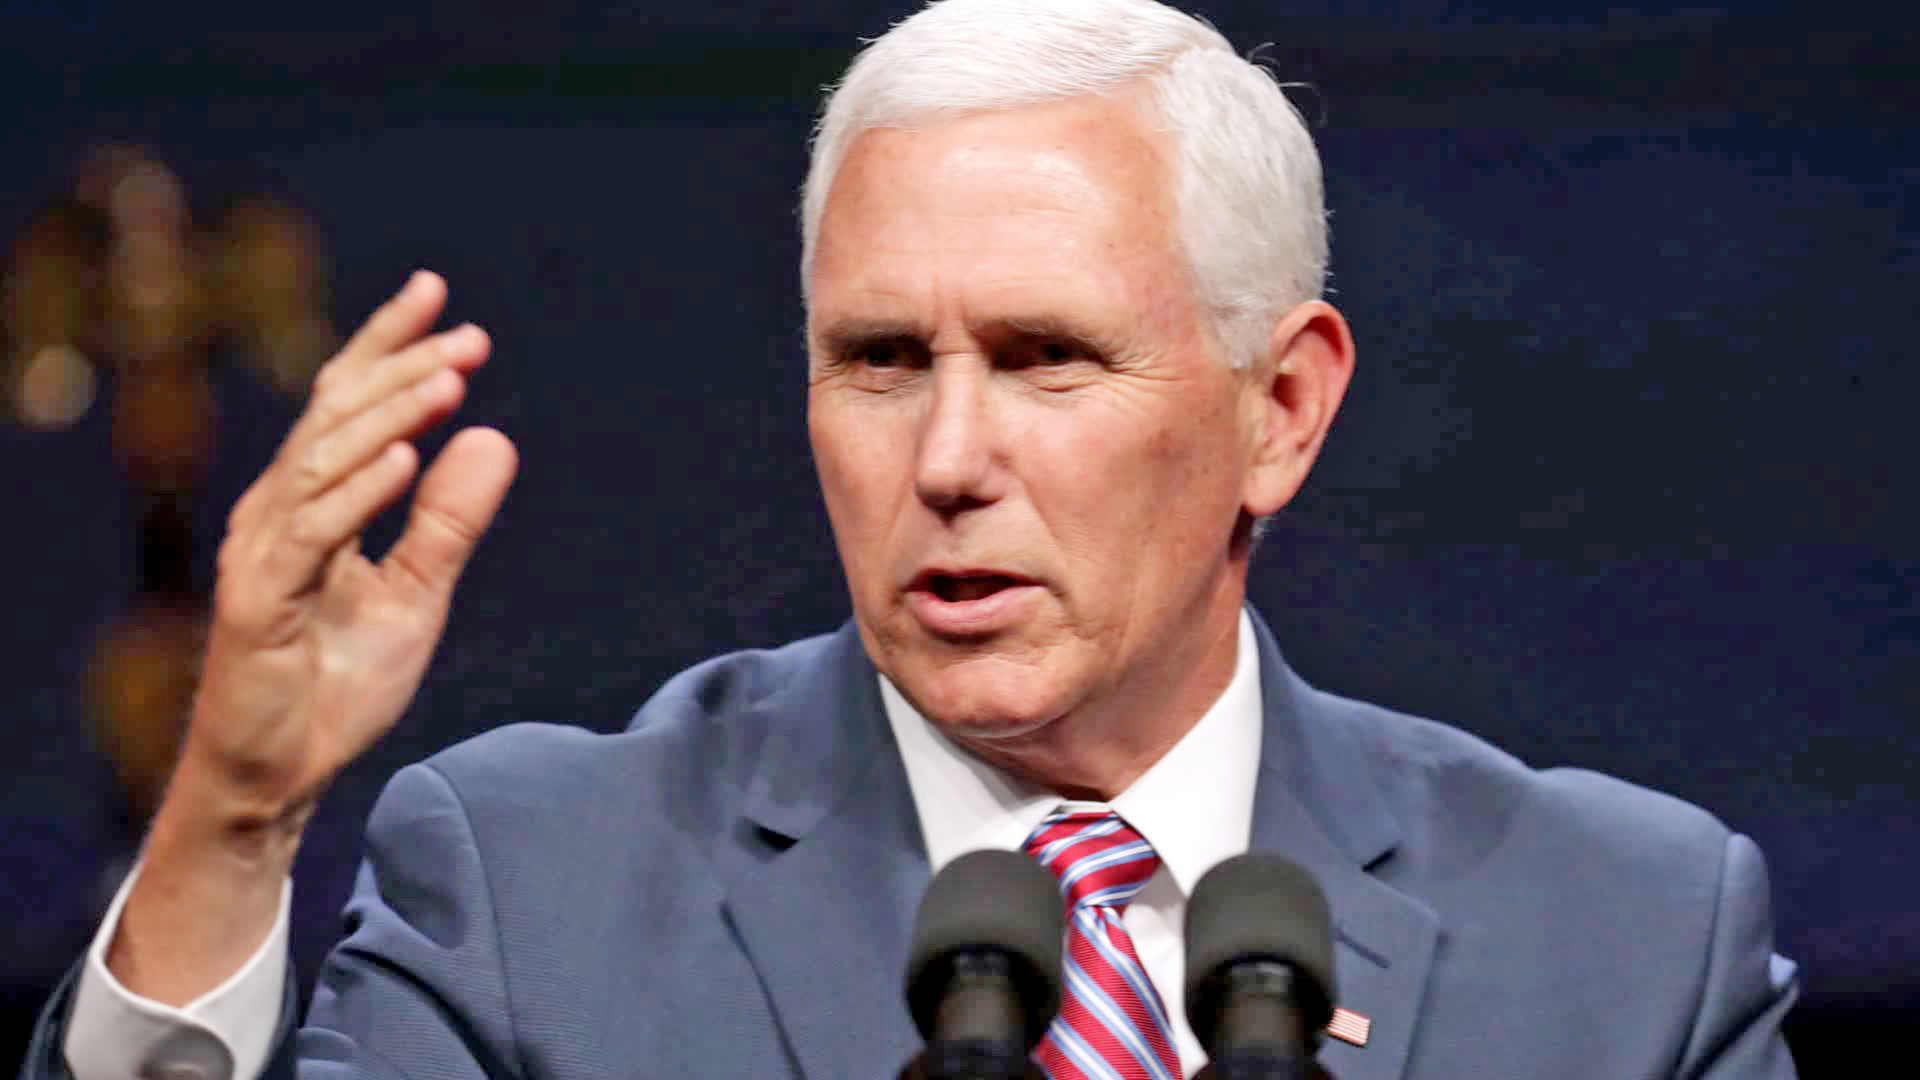 Fact check: Pence echoes Trump's Big Lie in dishonest op-ed on election rules